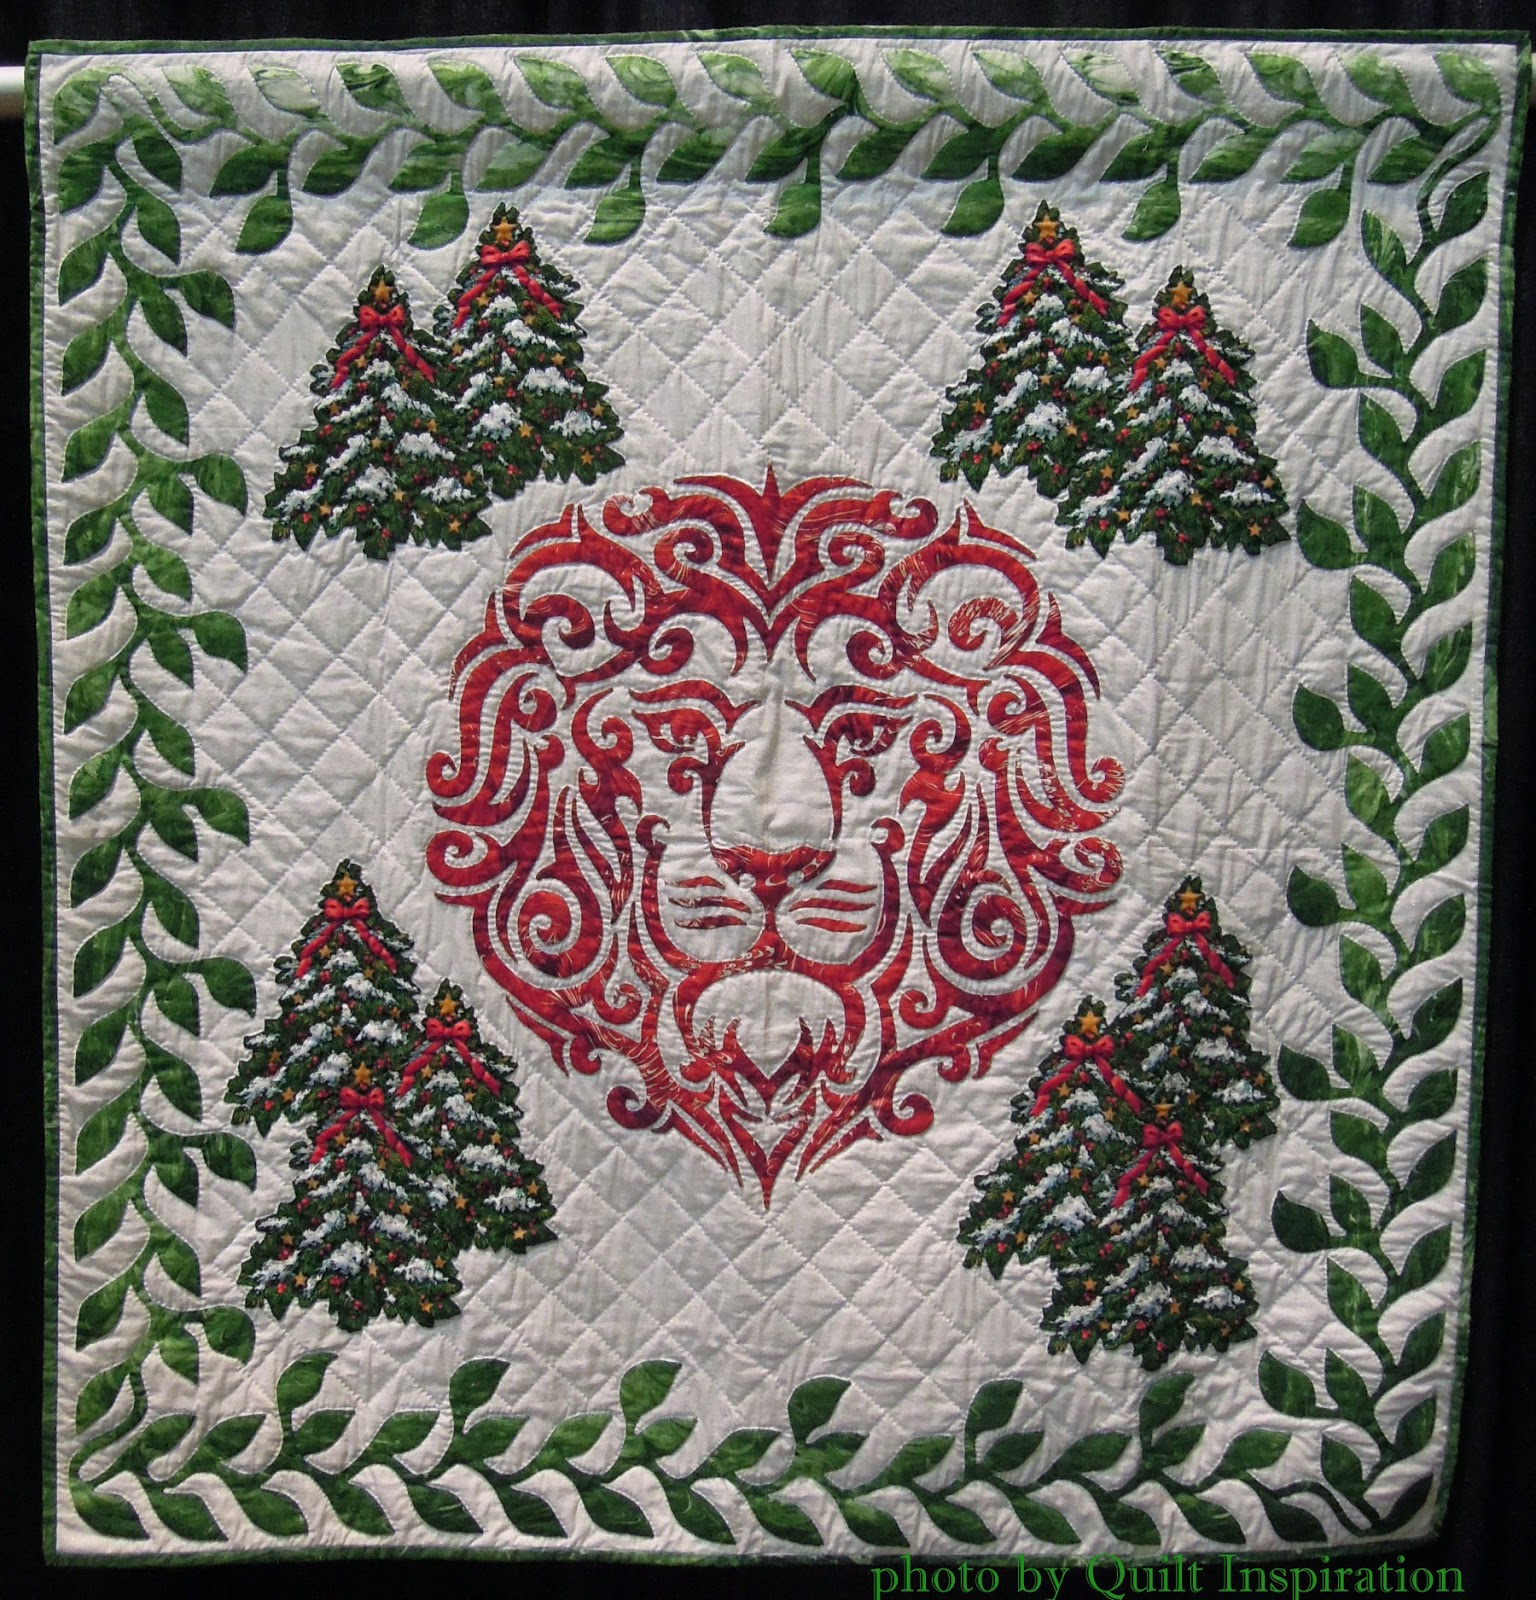 Quilt Inspiration: Twelve days of Christmas quilts ...